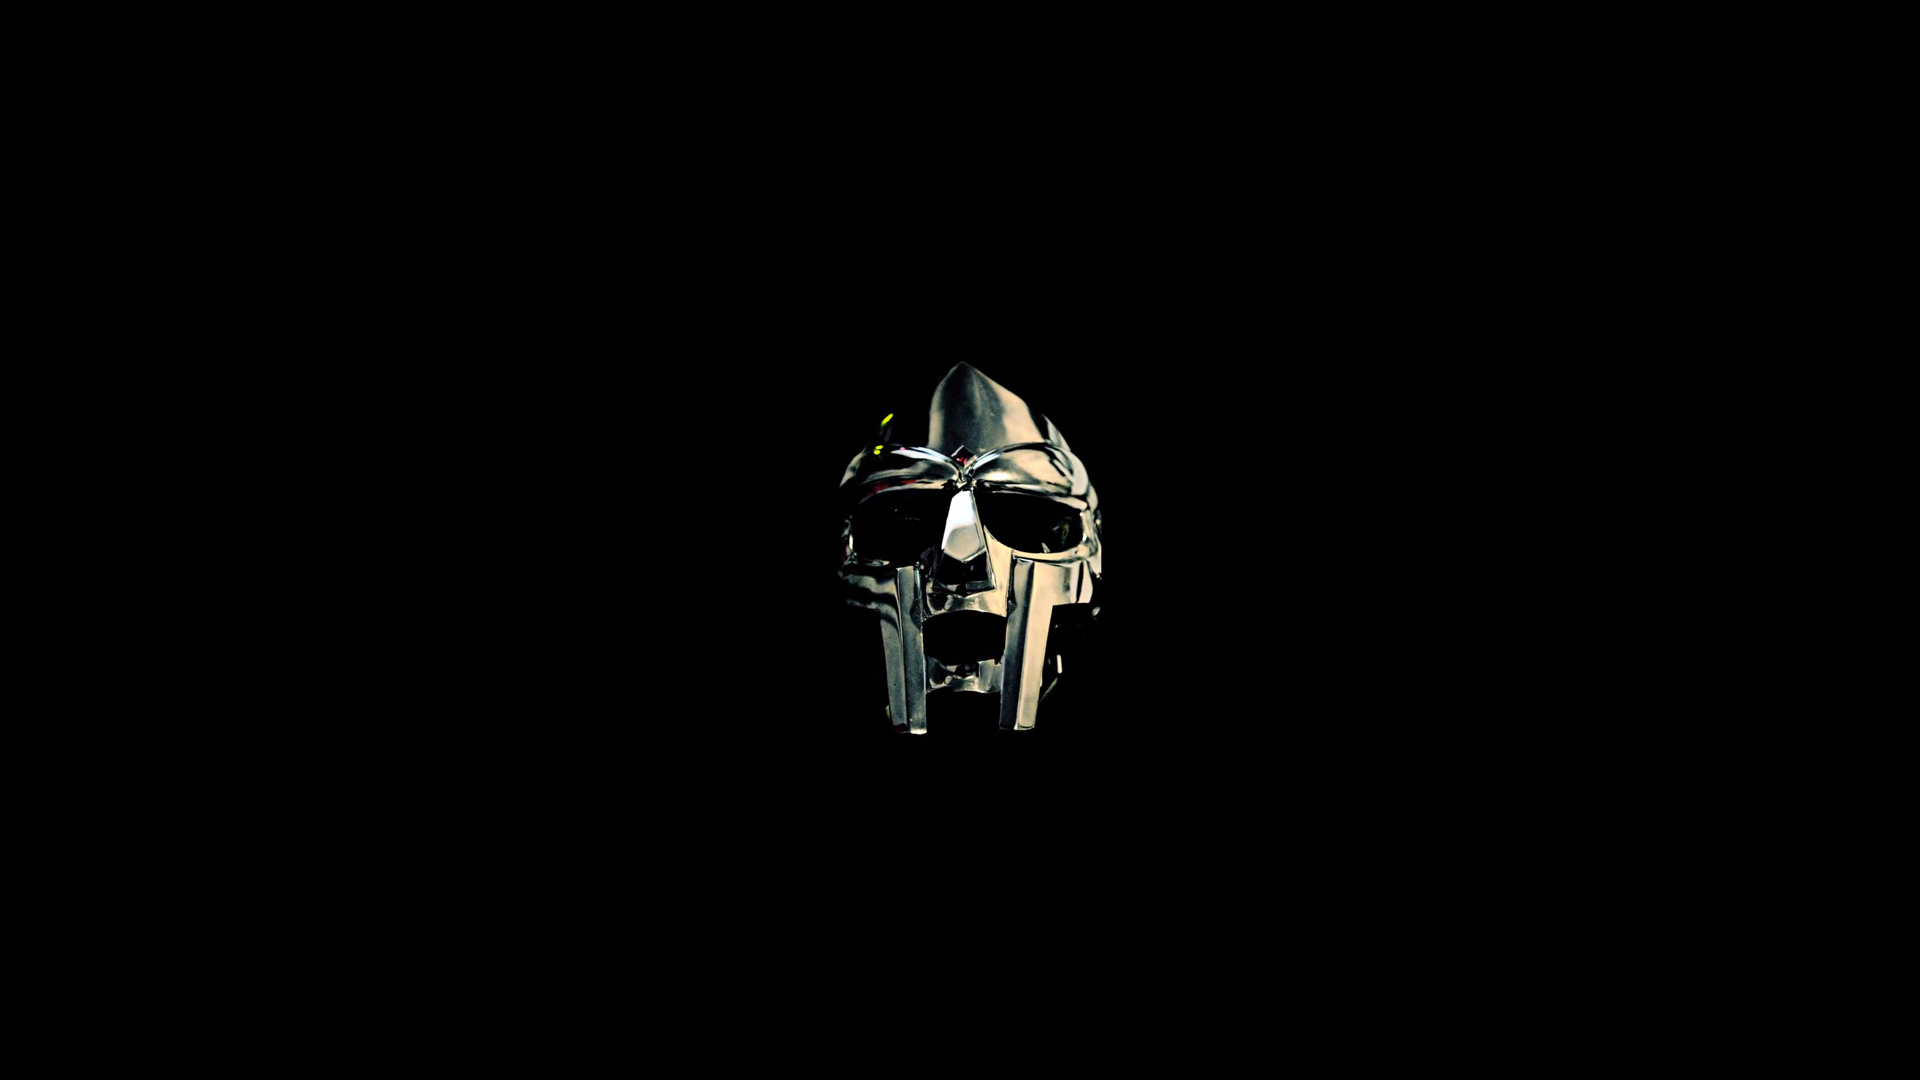 mf doom wallpaper 9 - photo #16